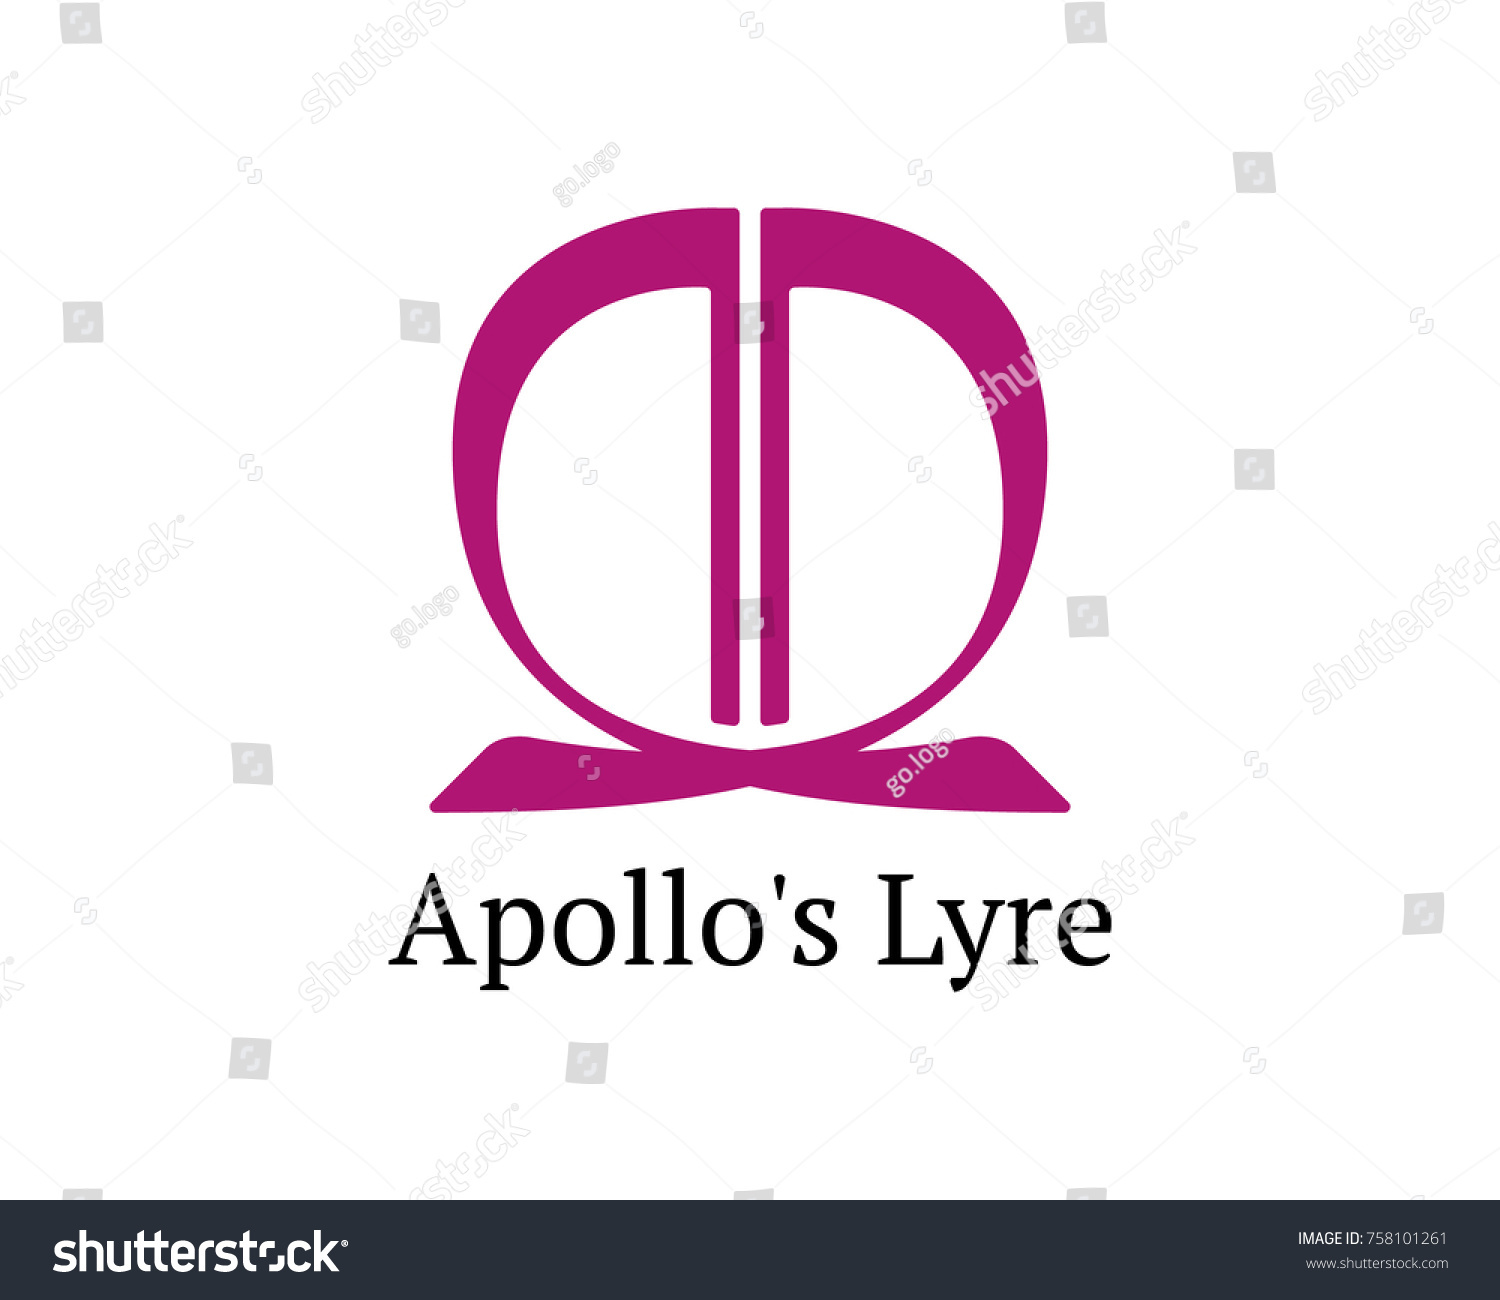 Letters ad apollos lyre logo stock vector 758101261 shutterstock letters ad and apollos lyre logo buycottarizona